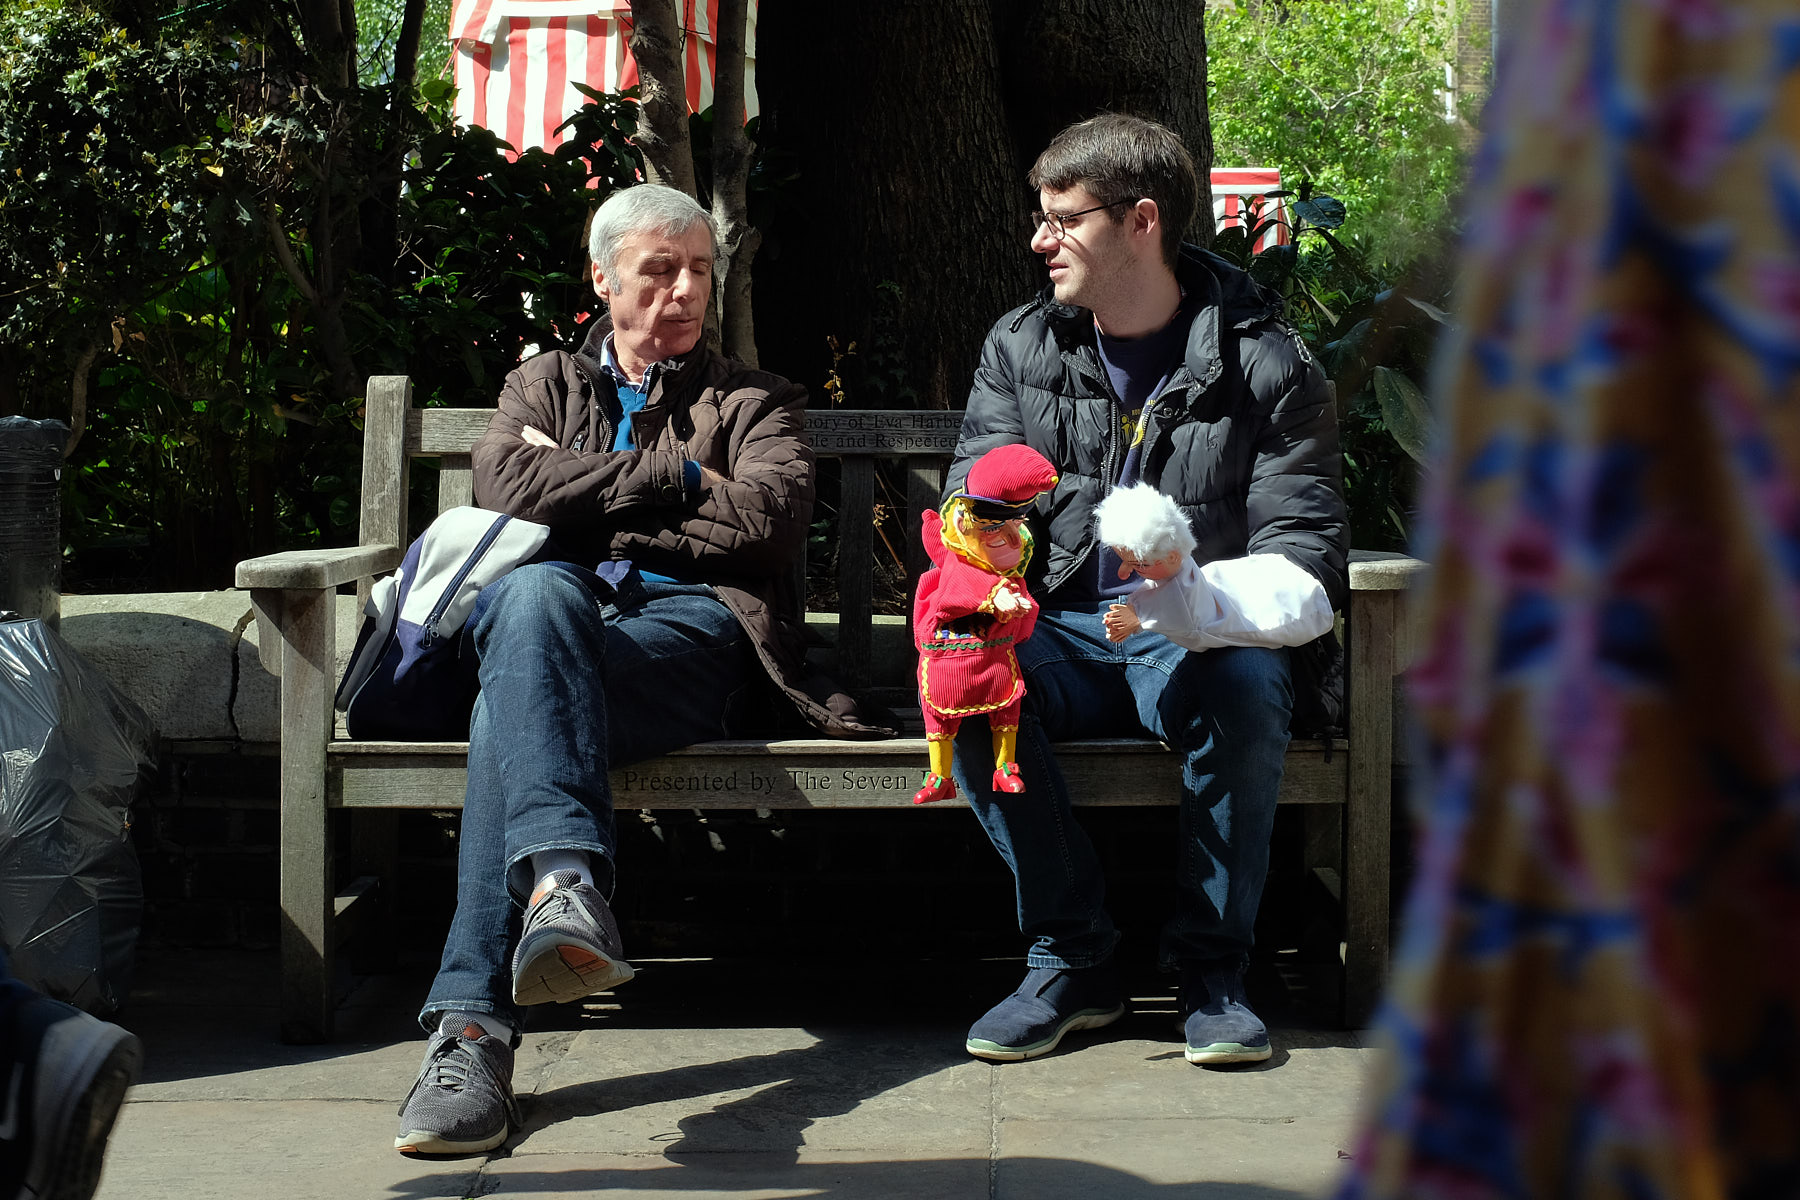 A father and son discuss puppets as they relax in the morning sun.